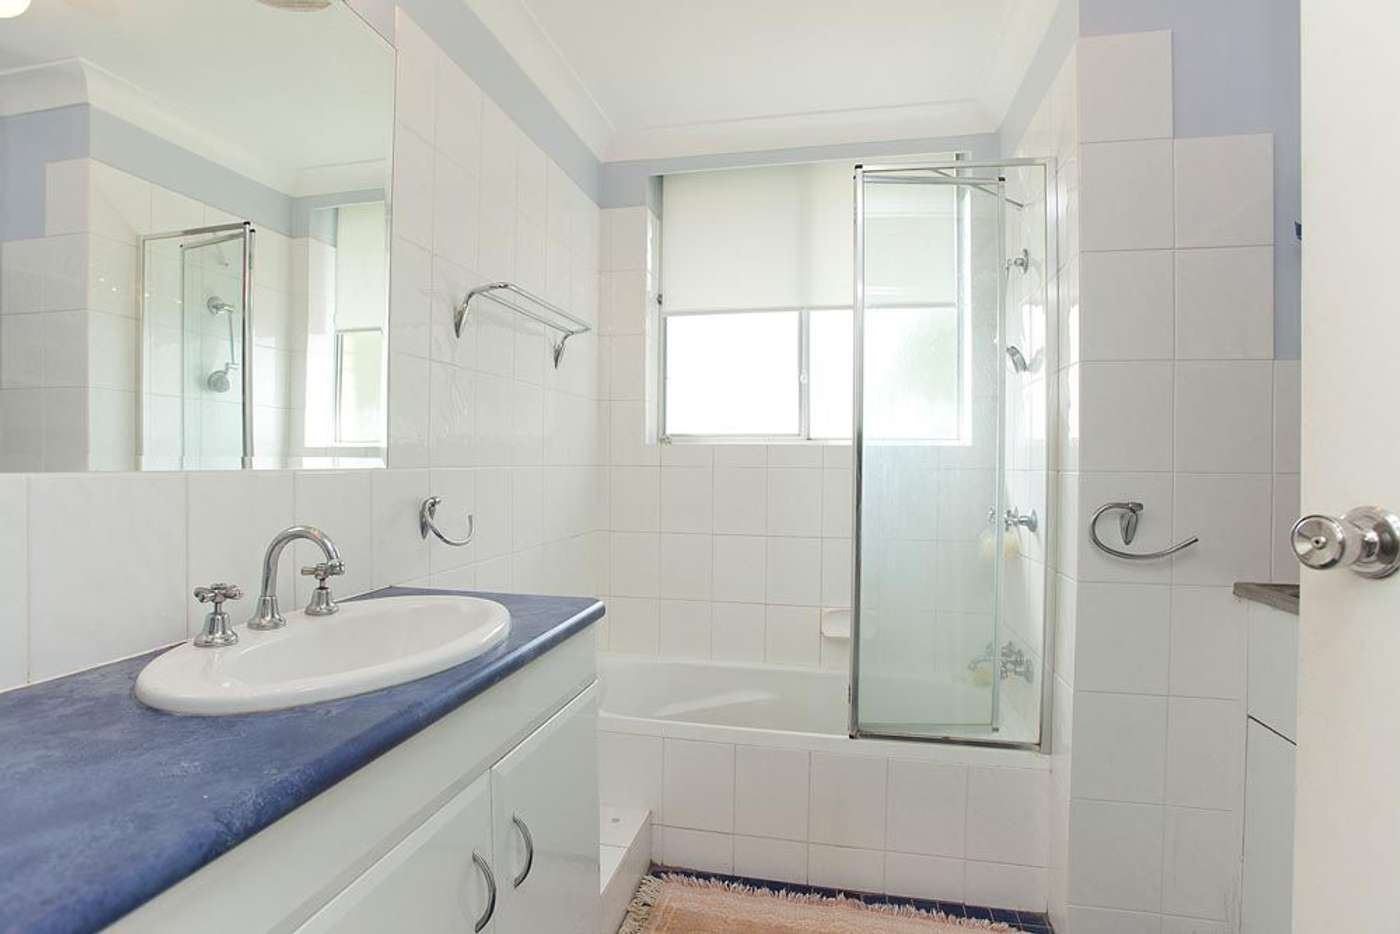 Fifth view of Homely apartment listing, 6/43-45 Dunmore Terrace, Auchenflower QLD 4066